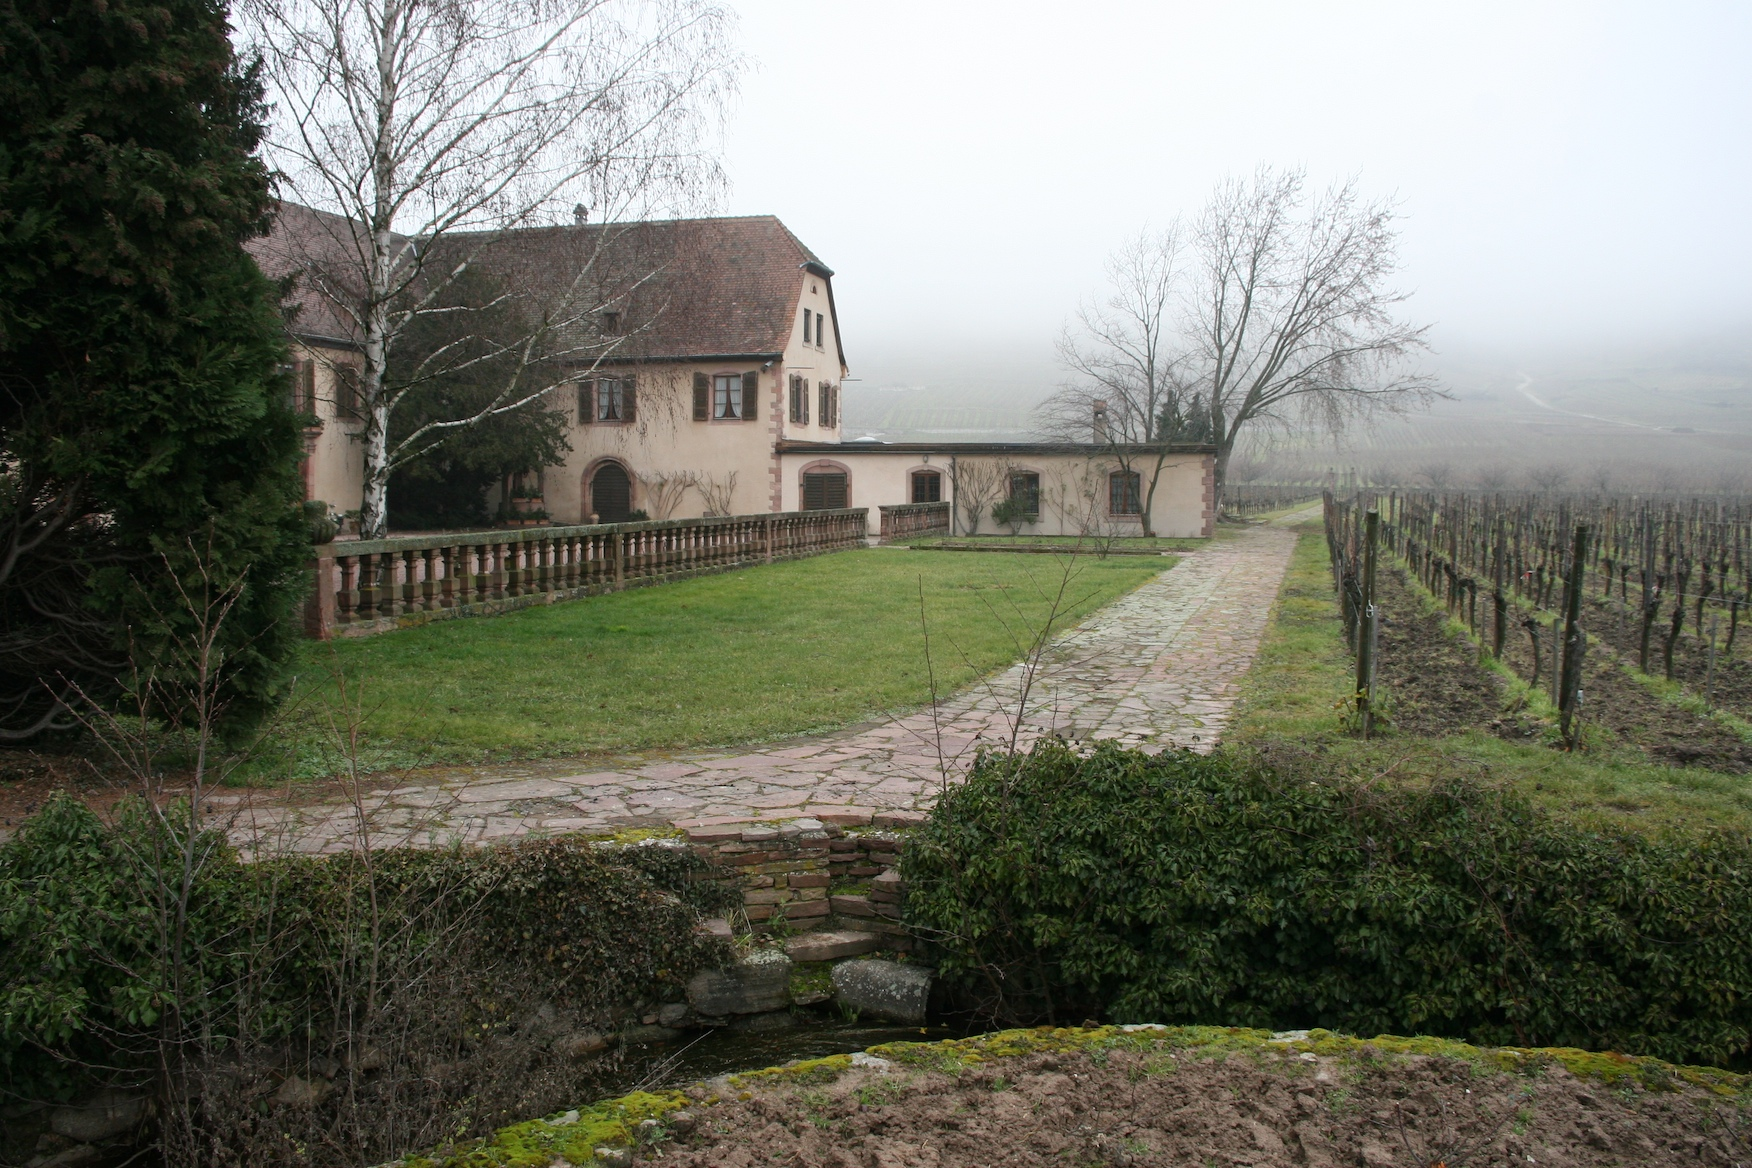 View of the Domaine and vineyards from the gates.